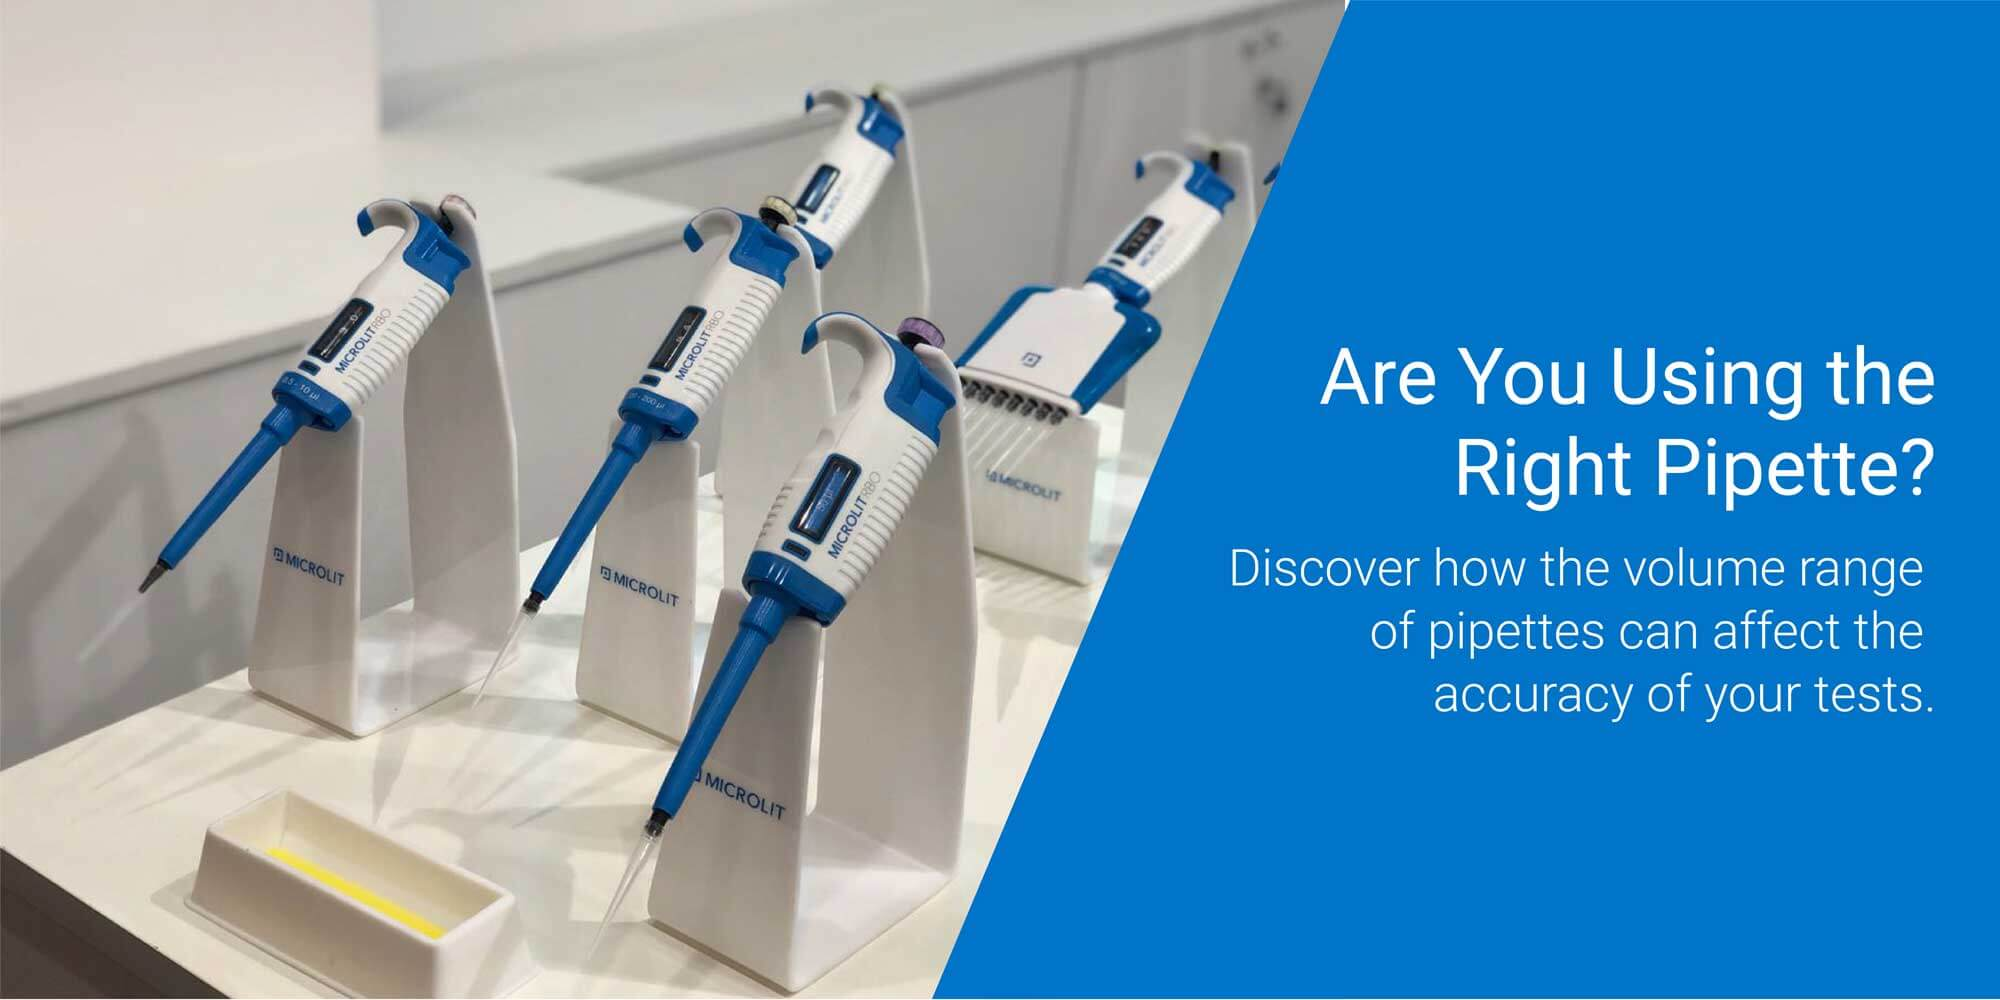 Is Your Pipette's Volume Range Right for Your Test?